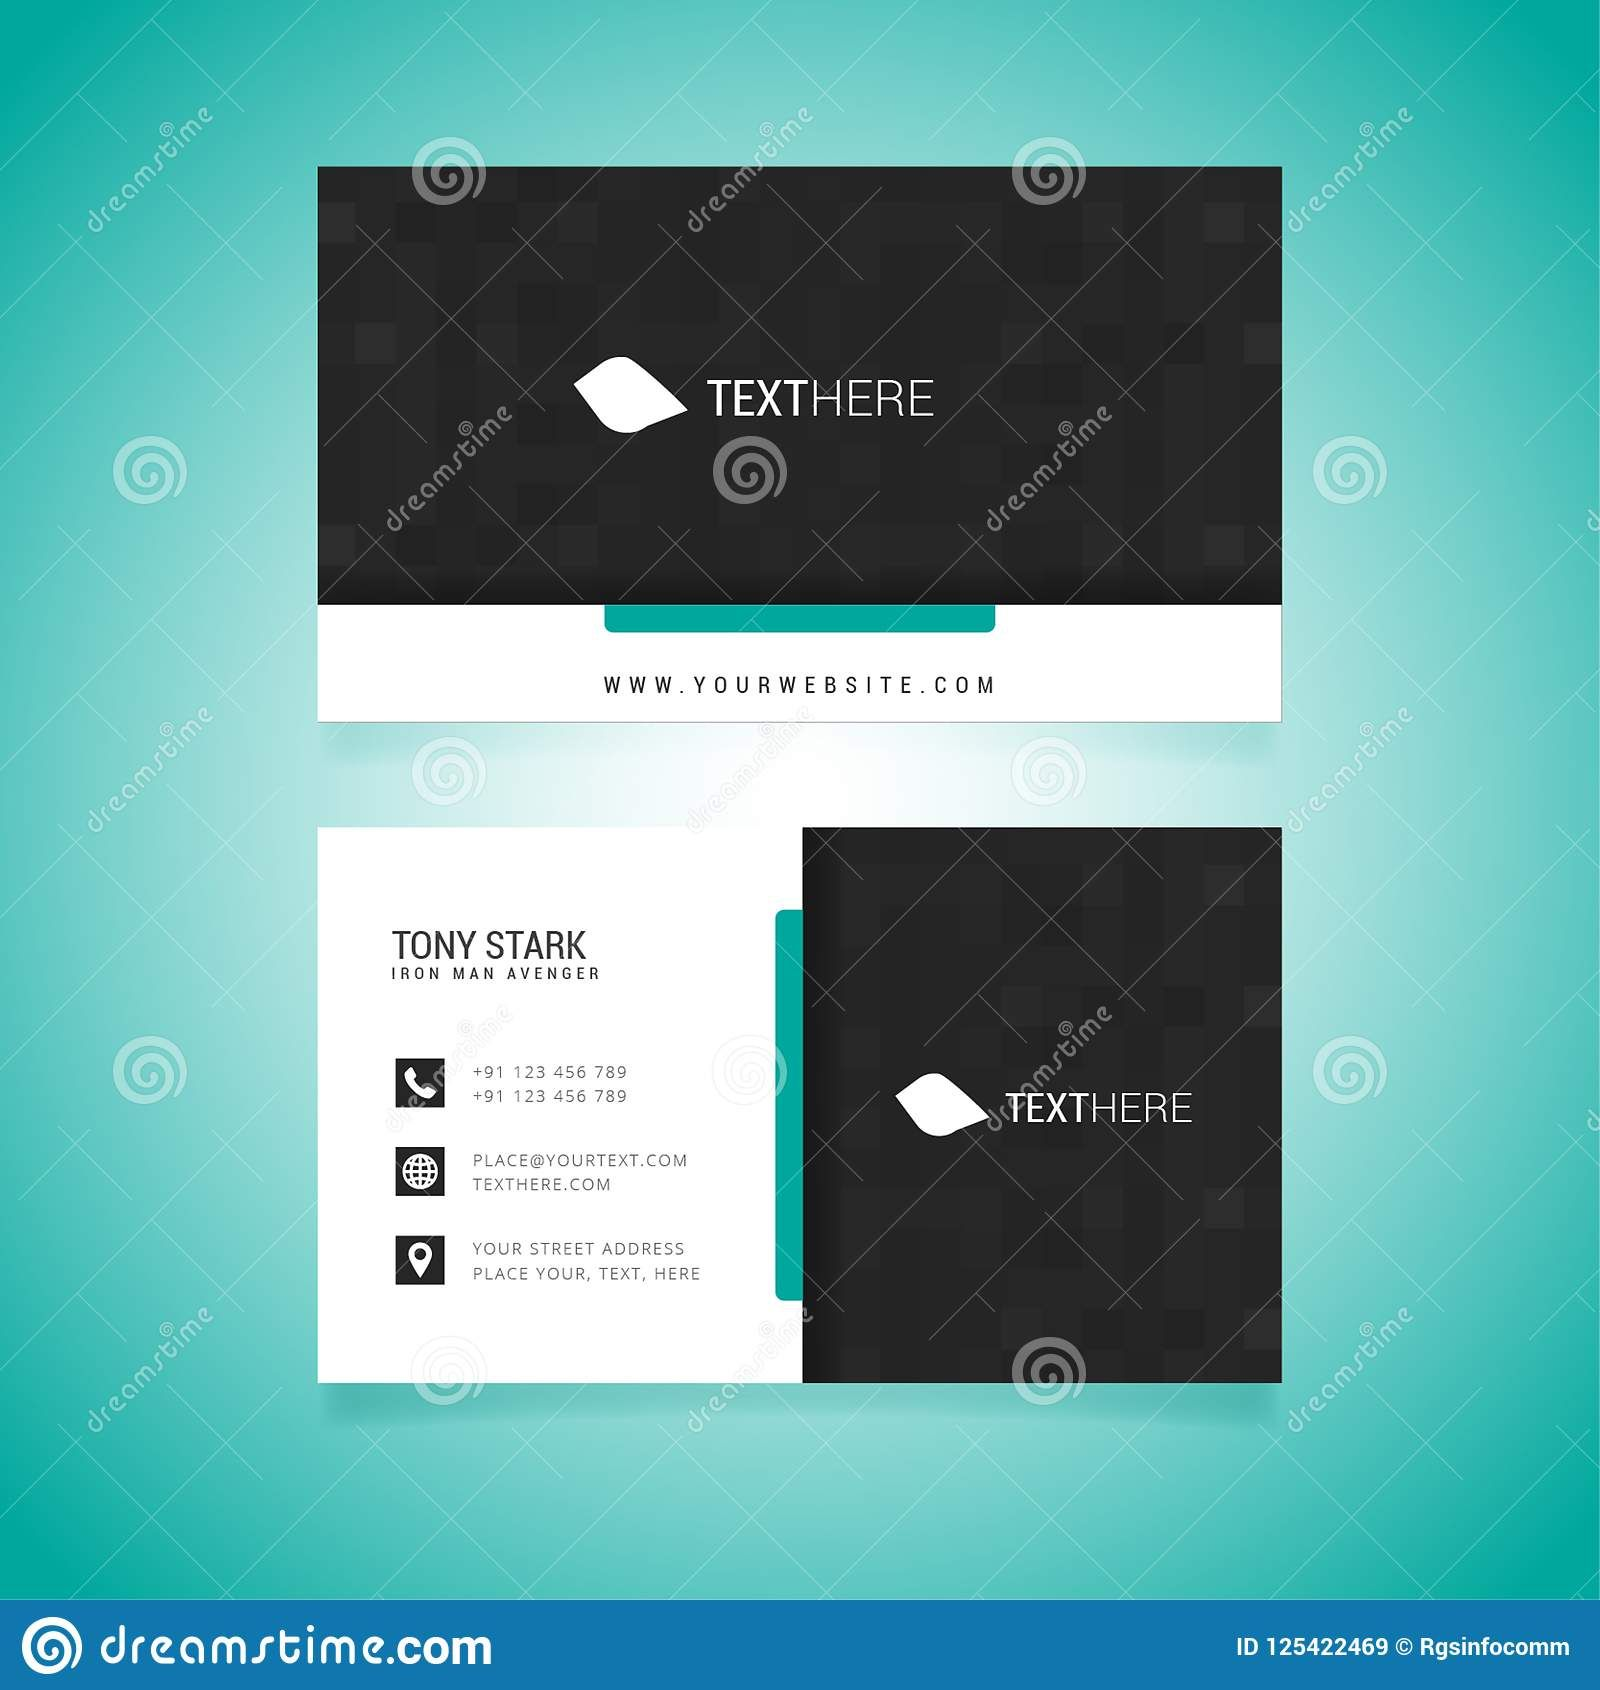 The Astonishing Business Card Vector Template Stock Vector Illus In 2020 Business Cards Vector Templates Illustration Business Cards Business Card Template Photoshop